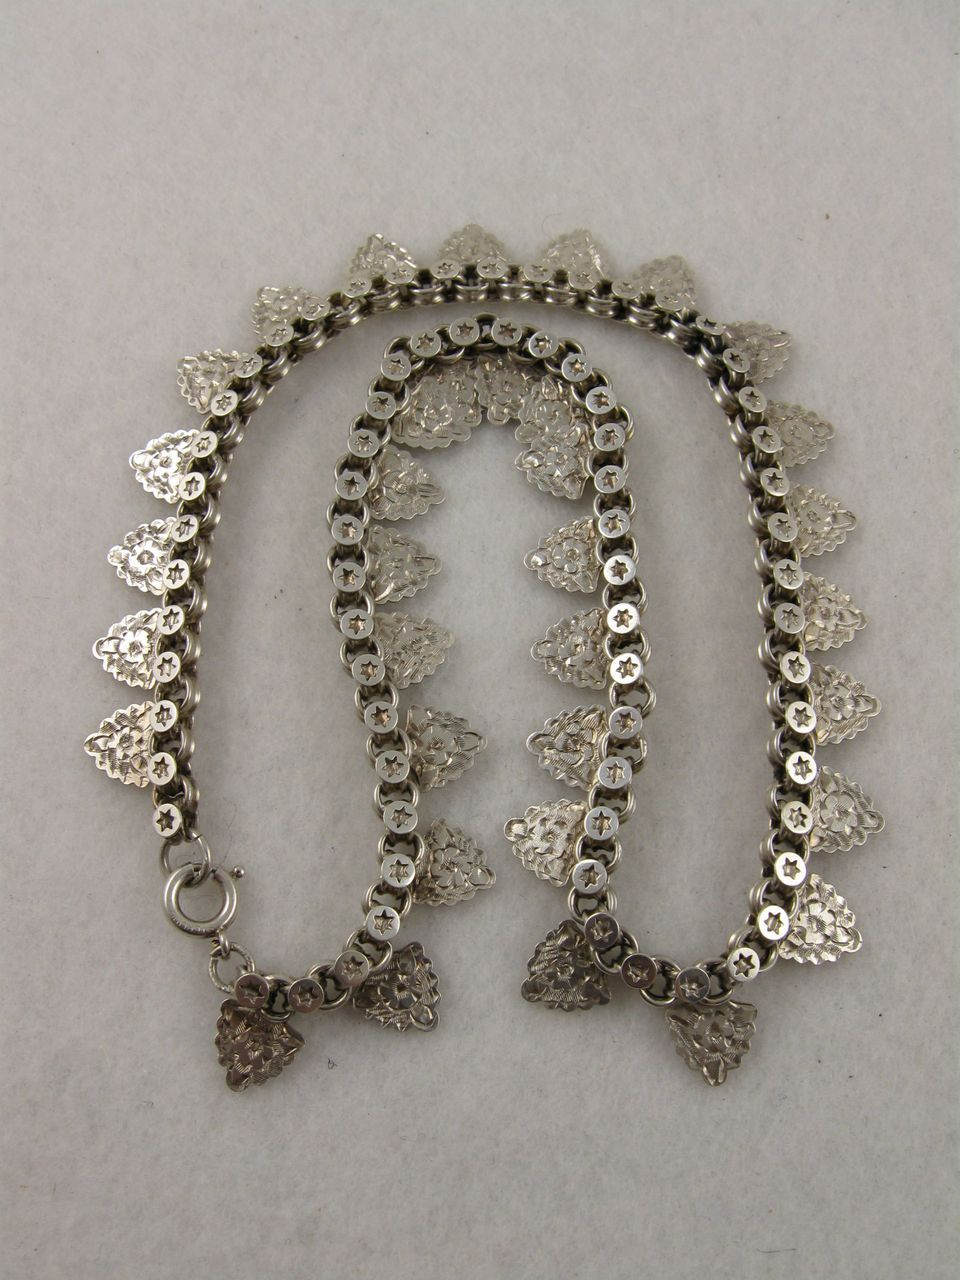 Antique Victorian 'Leaf & Stars' Fringe Collar Necklace Chain. A current favourite! $325